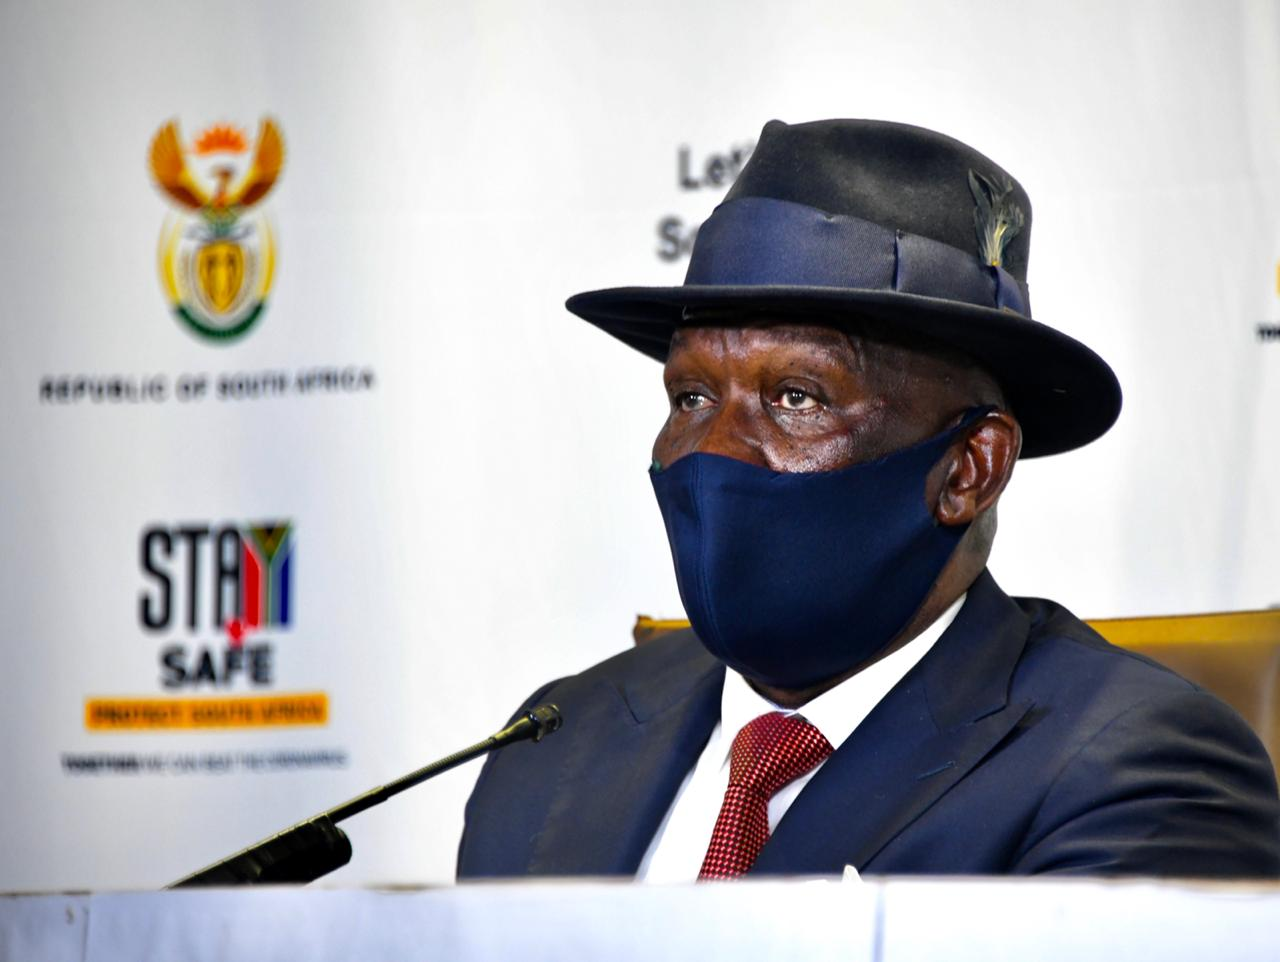 Cele pessimistic on SA's chances of defeating GBV, femicide